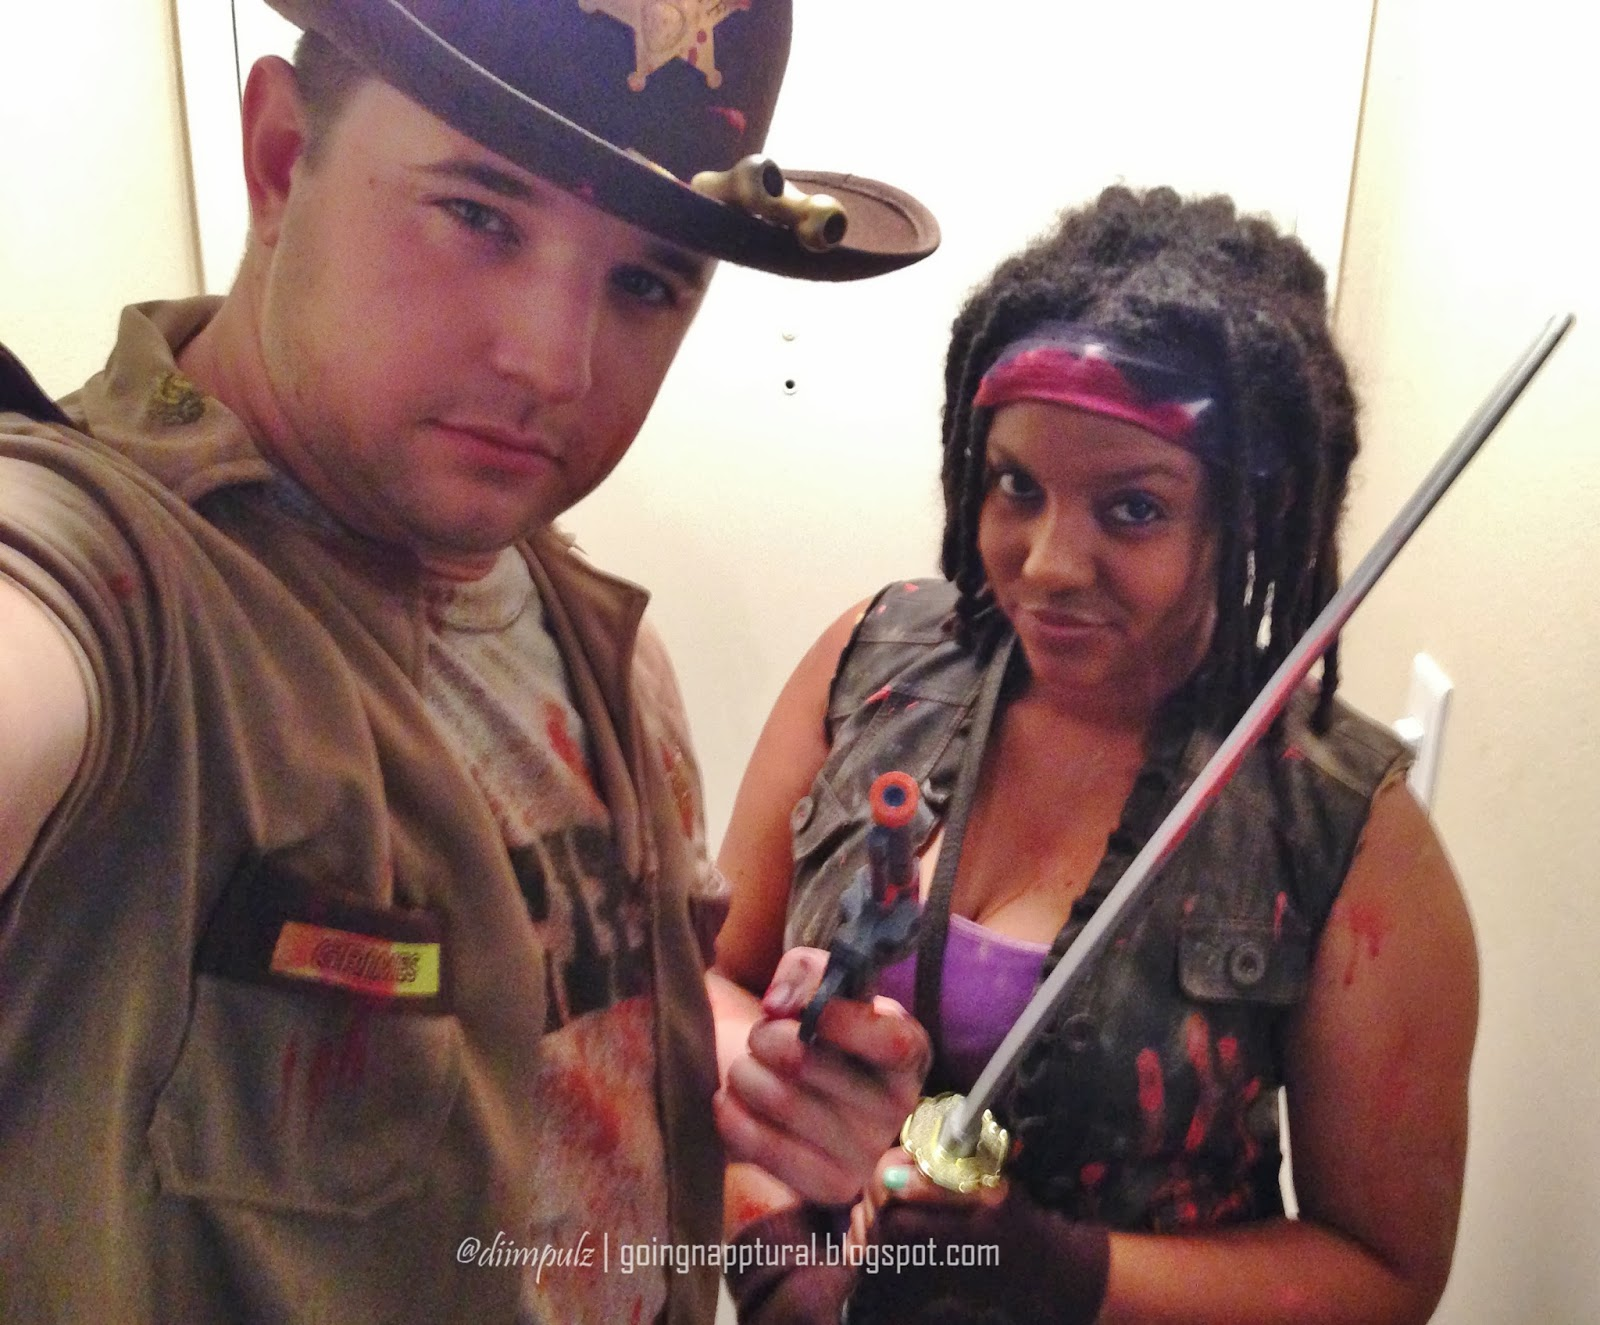 sc 1 st  Blog & Going Napptural: Halloween 2013